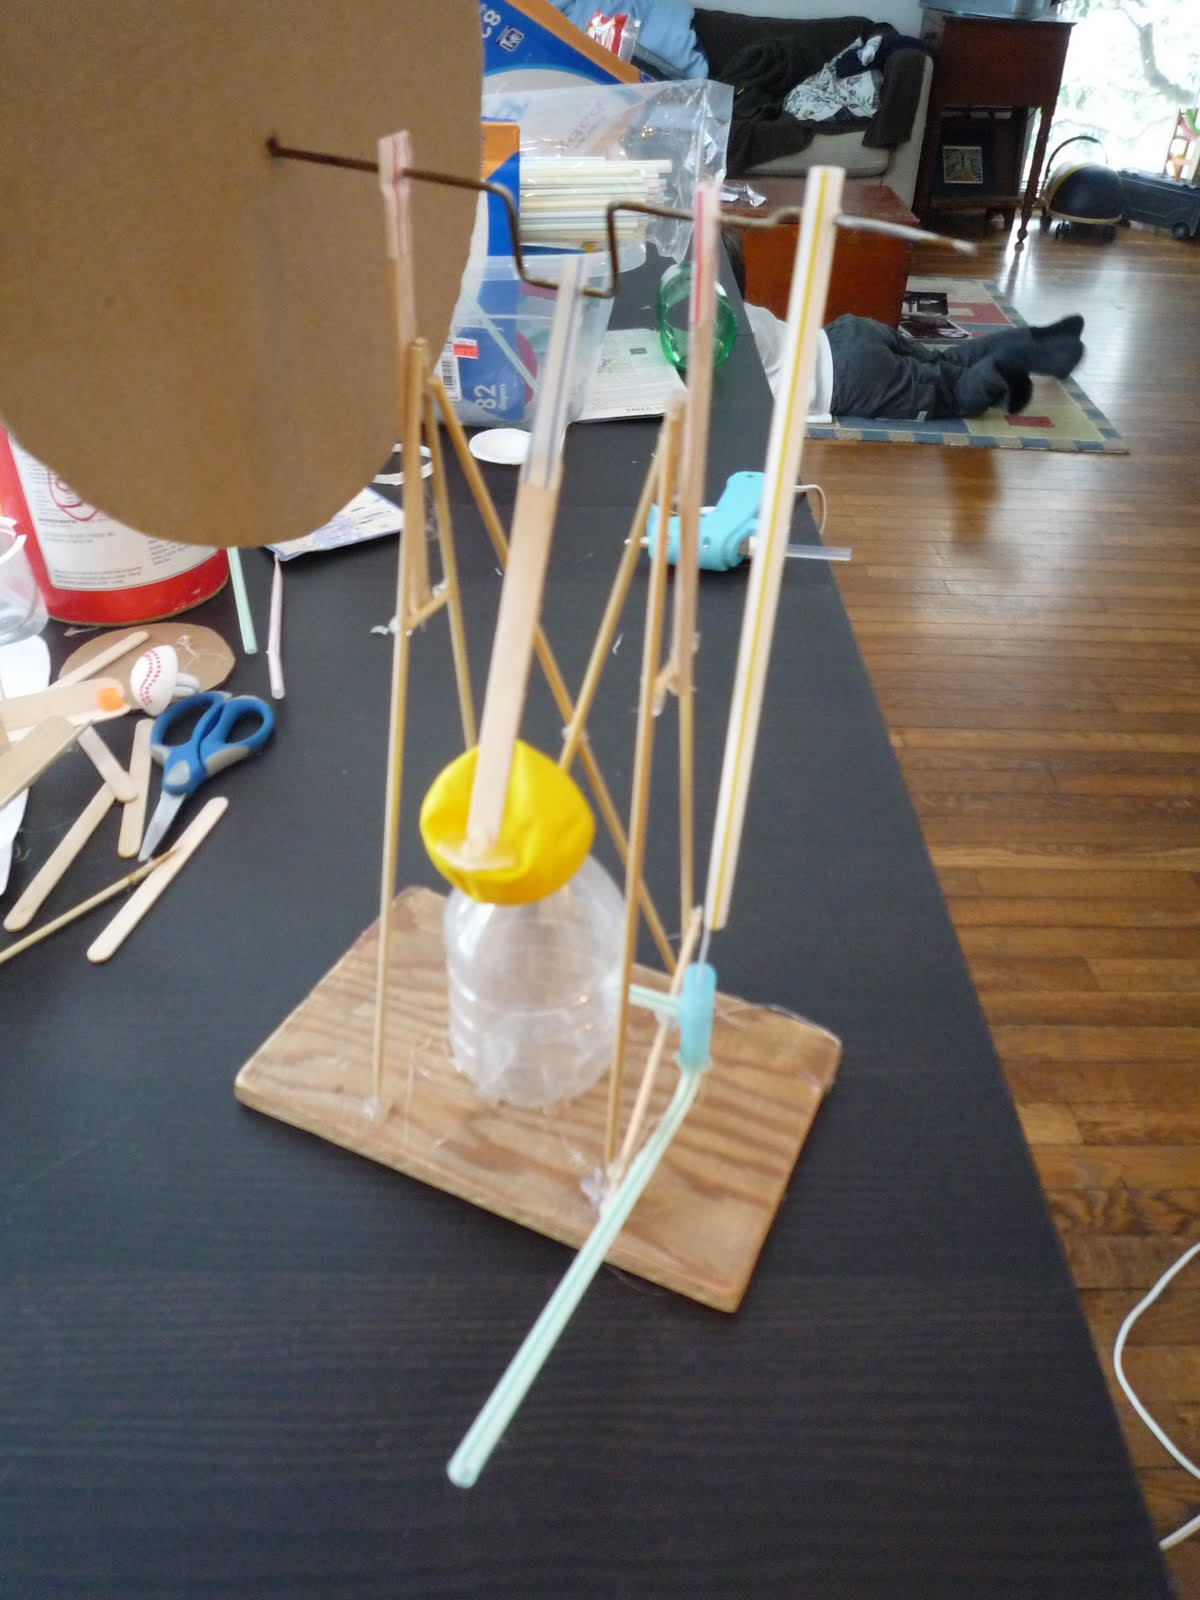 How to make a model steam engine